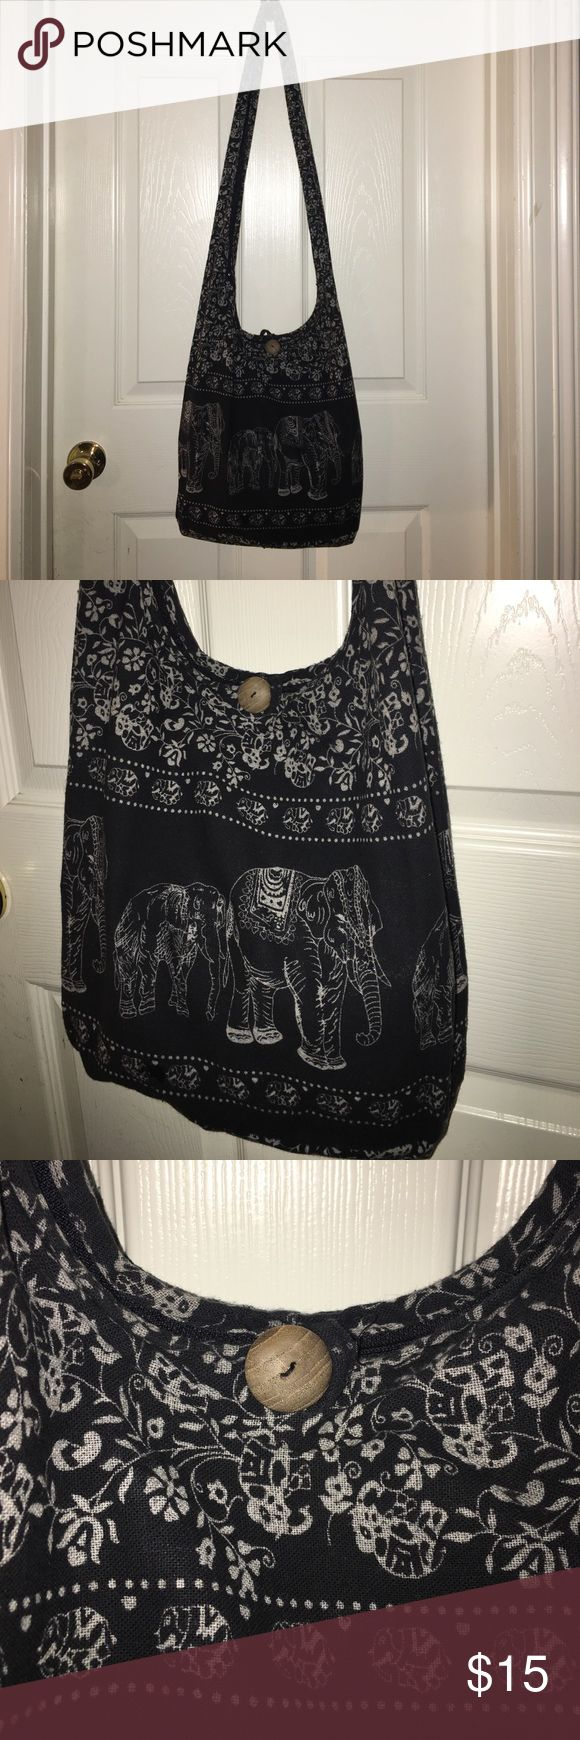 Boho Hobo Crossbody Bag 15x12-Excellent Condition-Super Cute and Very Clean. Used Once for trip. Bags Hobos